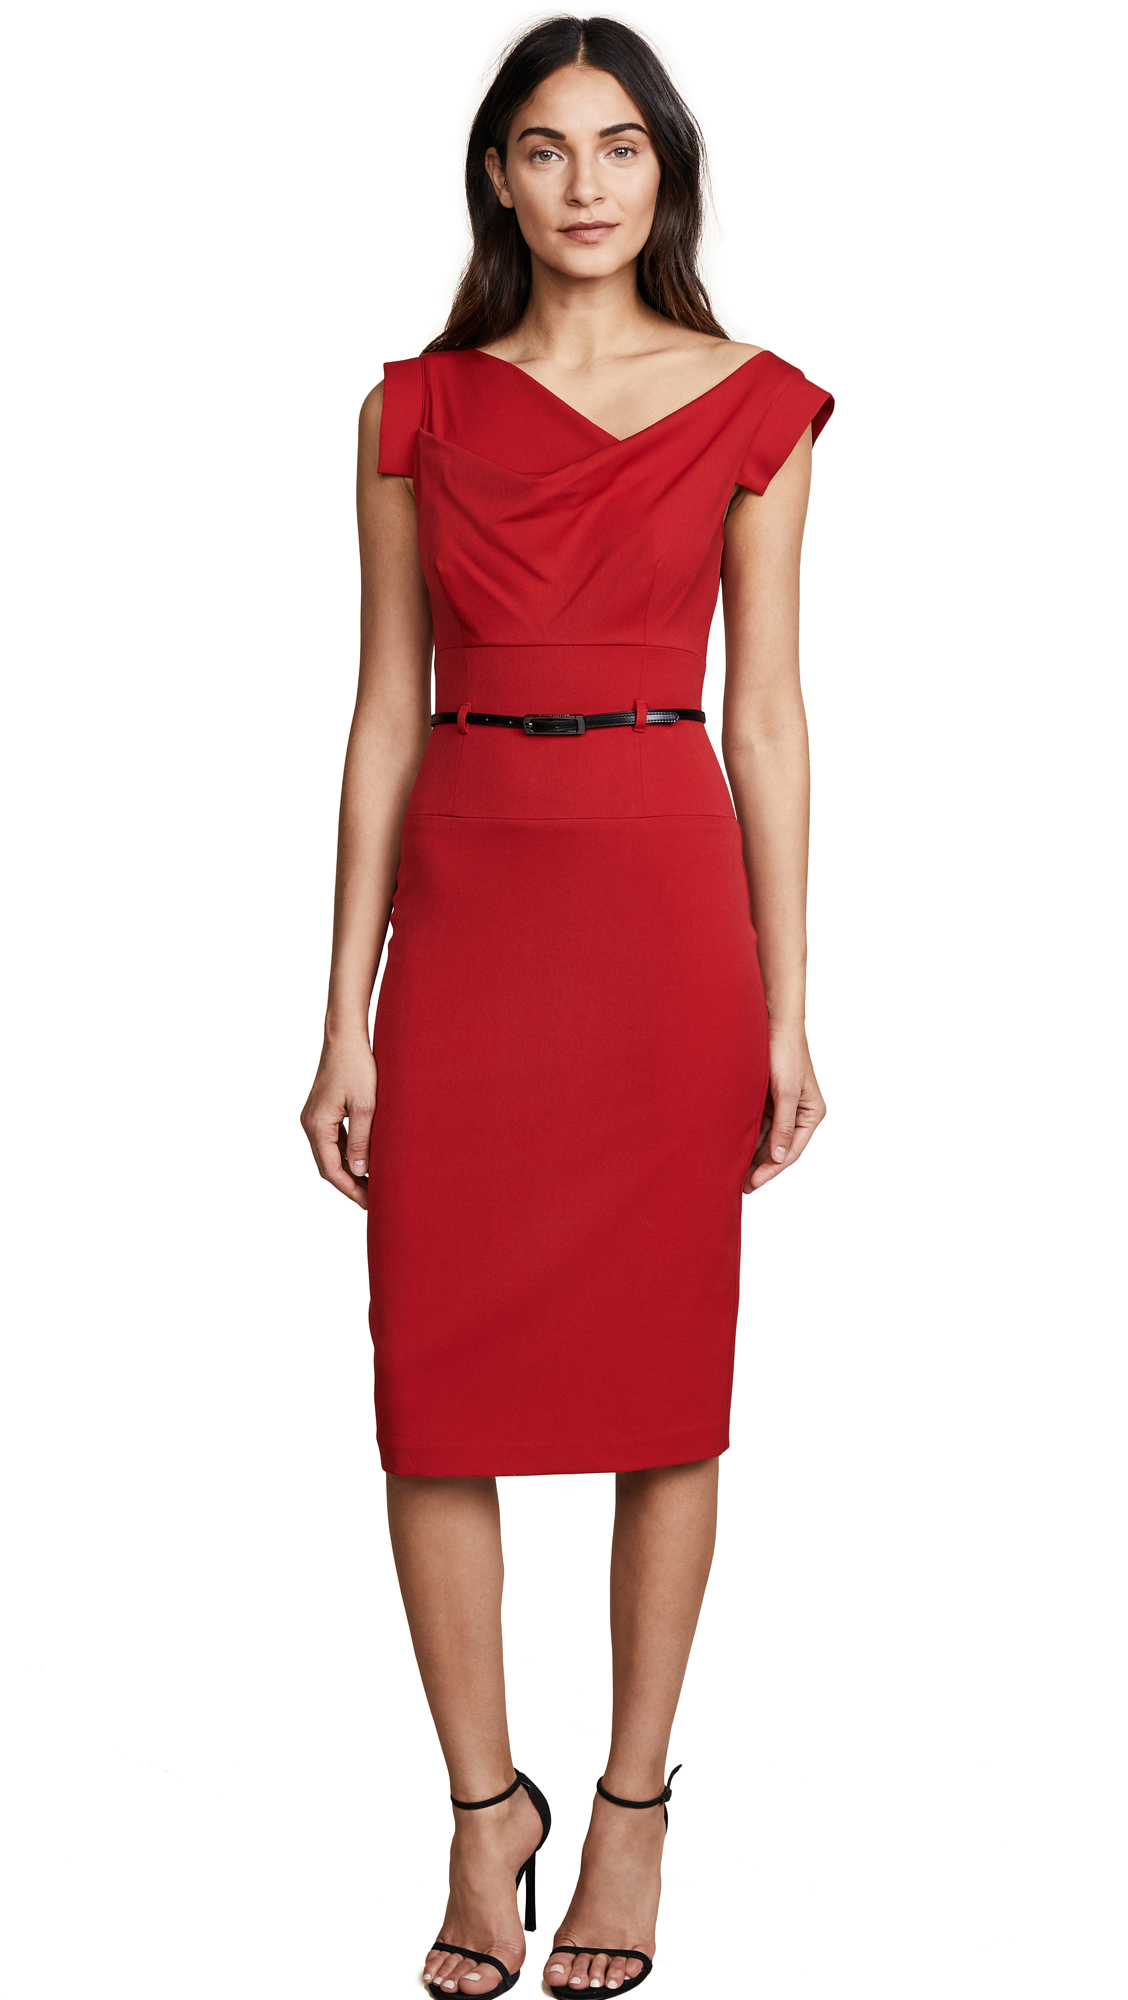 Black Halo Jackie O Belted Dress - Red